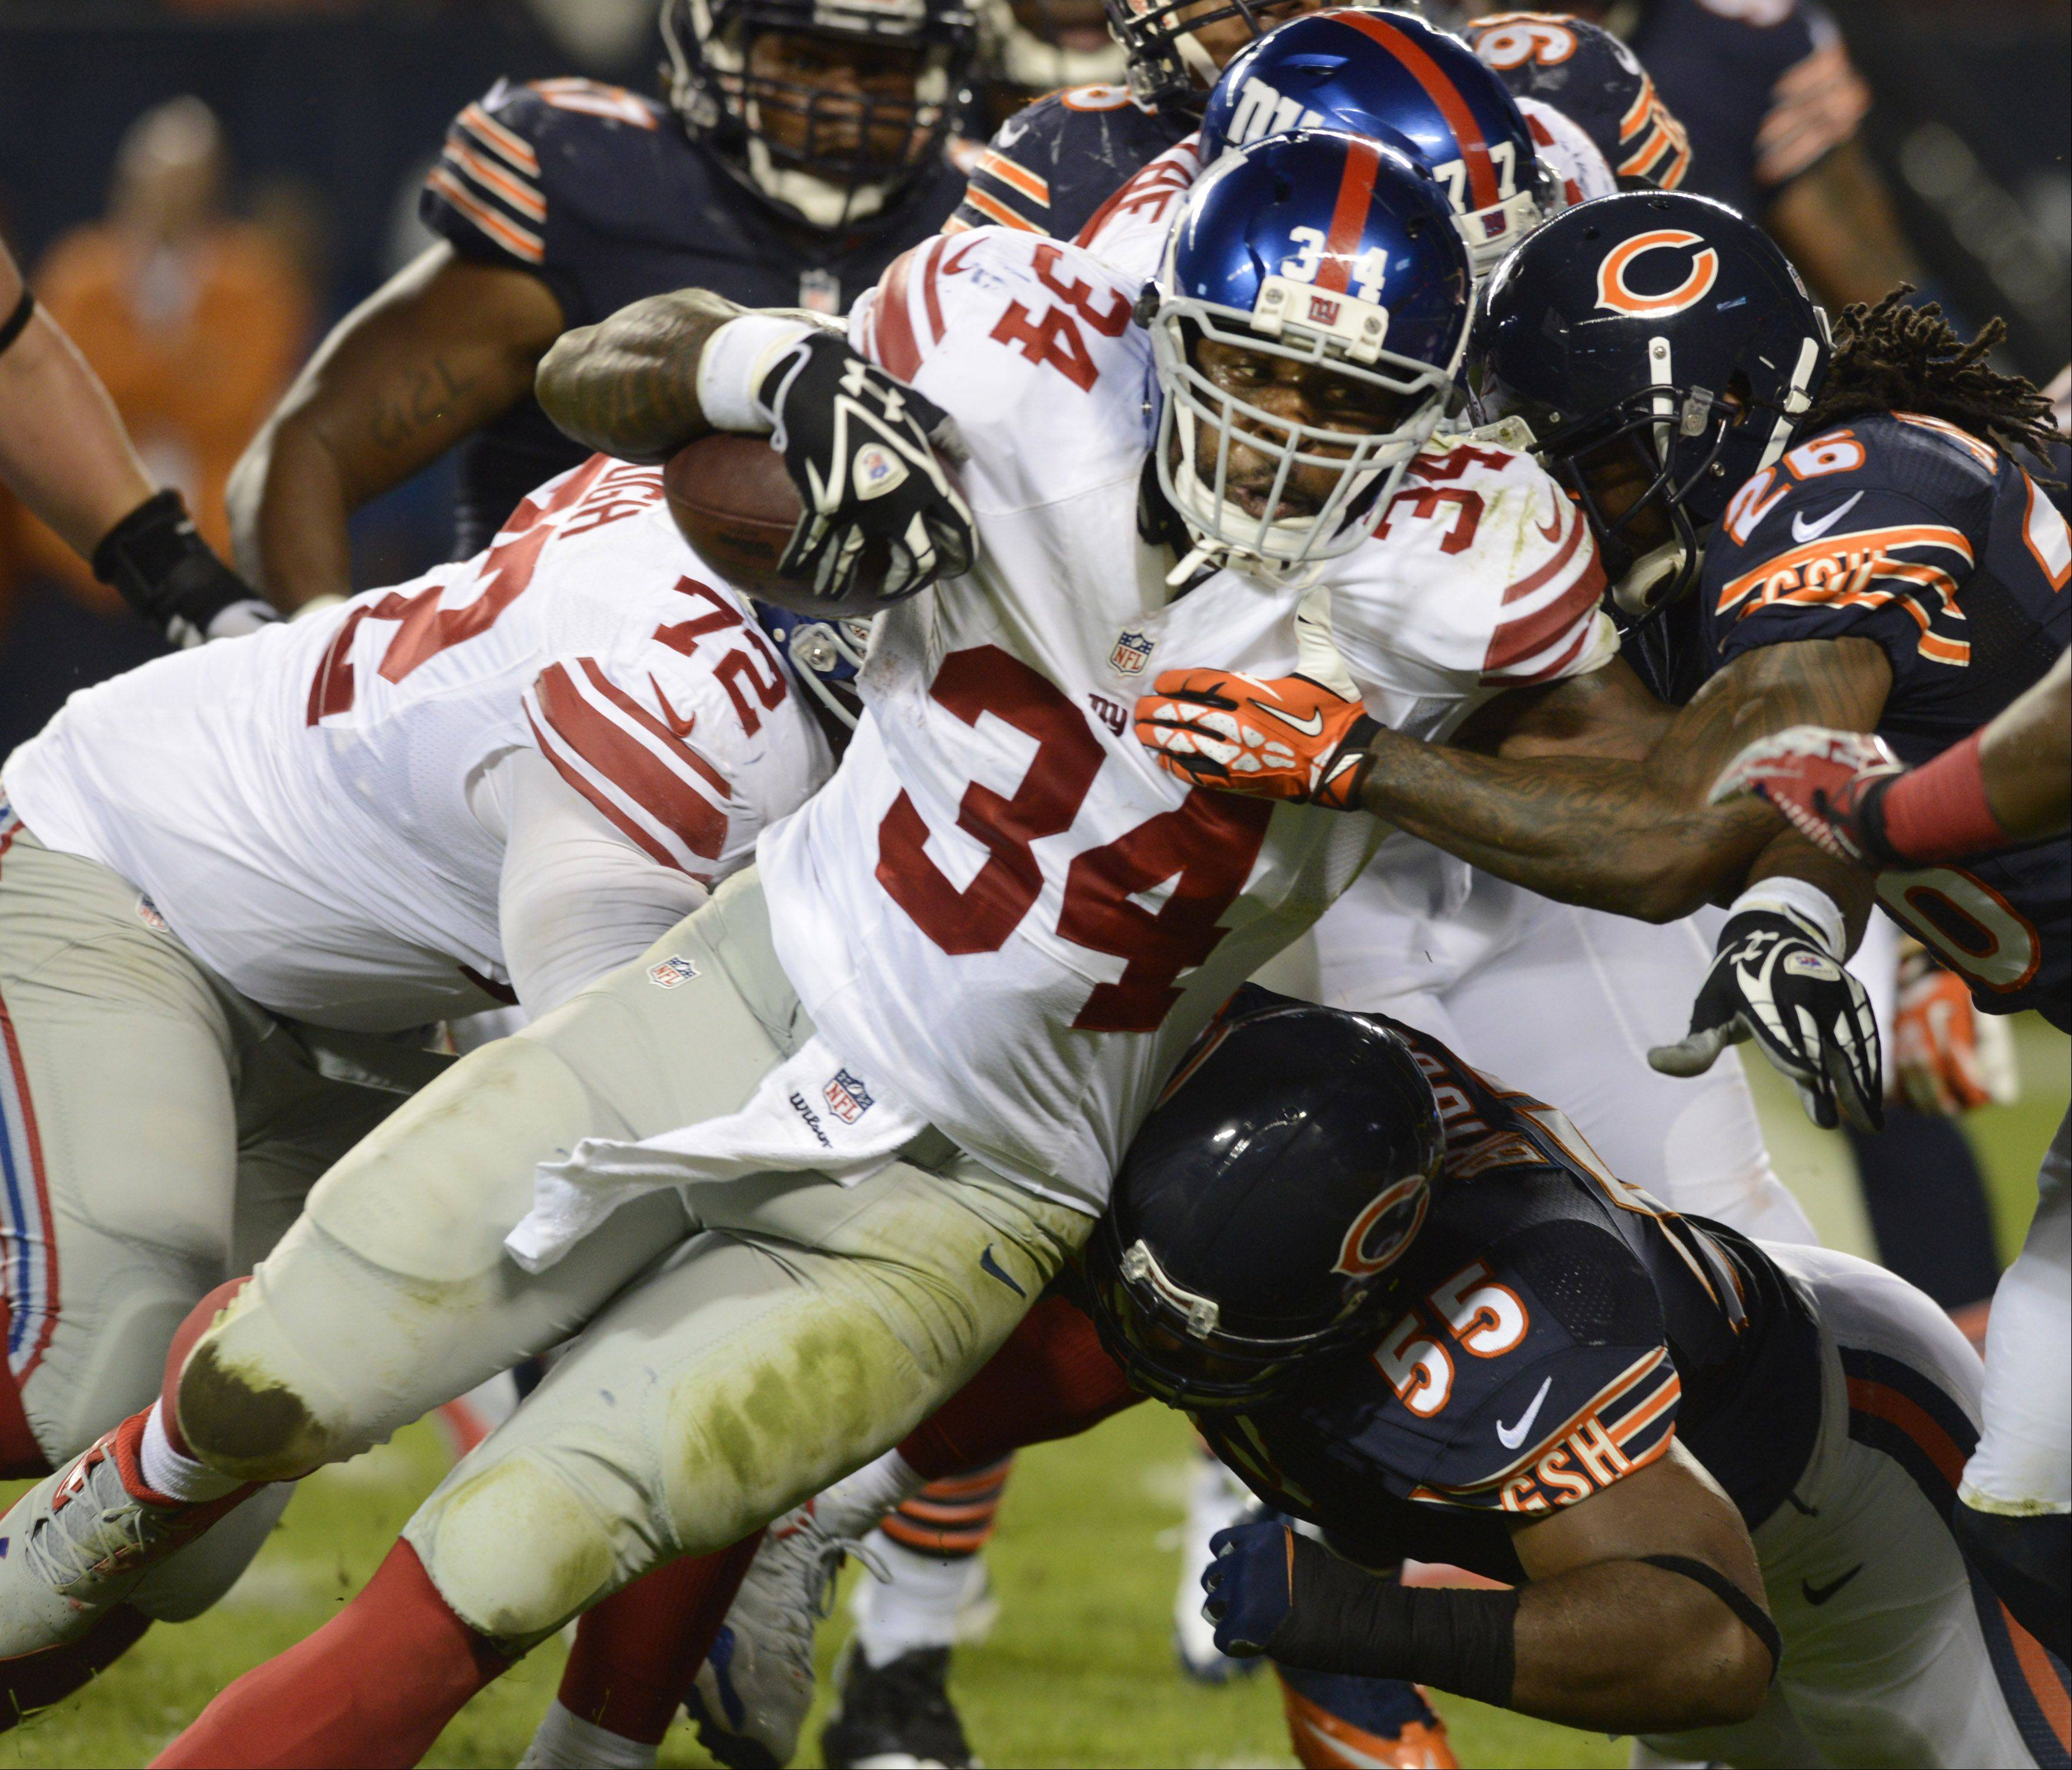 New York Giants running back Brandon Jacobs drags the Chicago Bears defense with him for a touchdown during Thursday's game at Soldier Field.